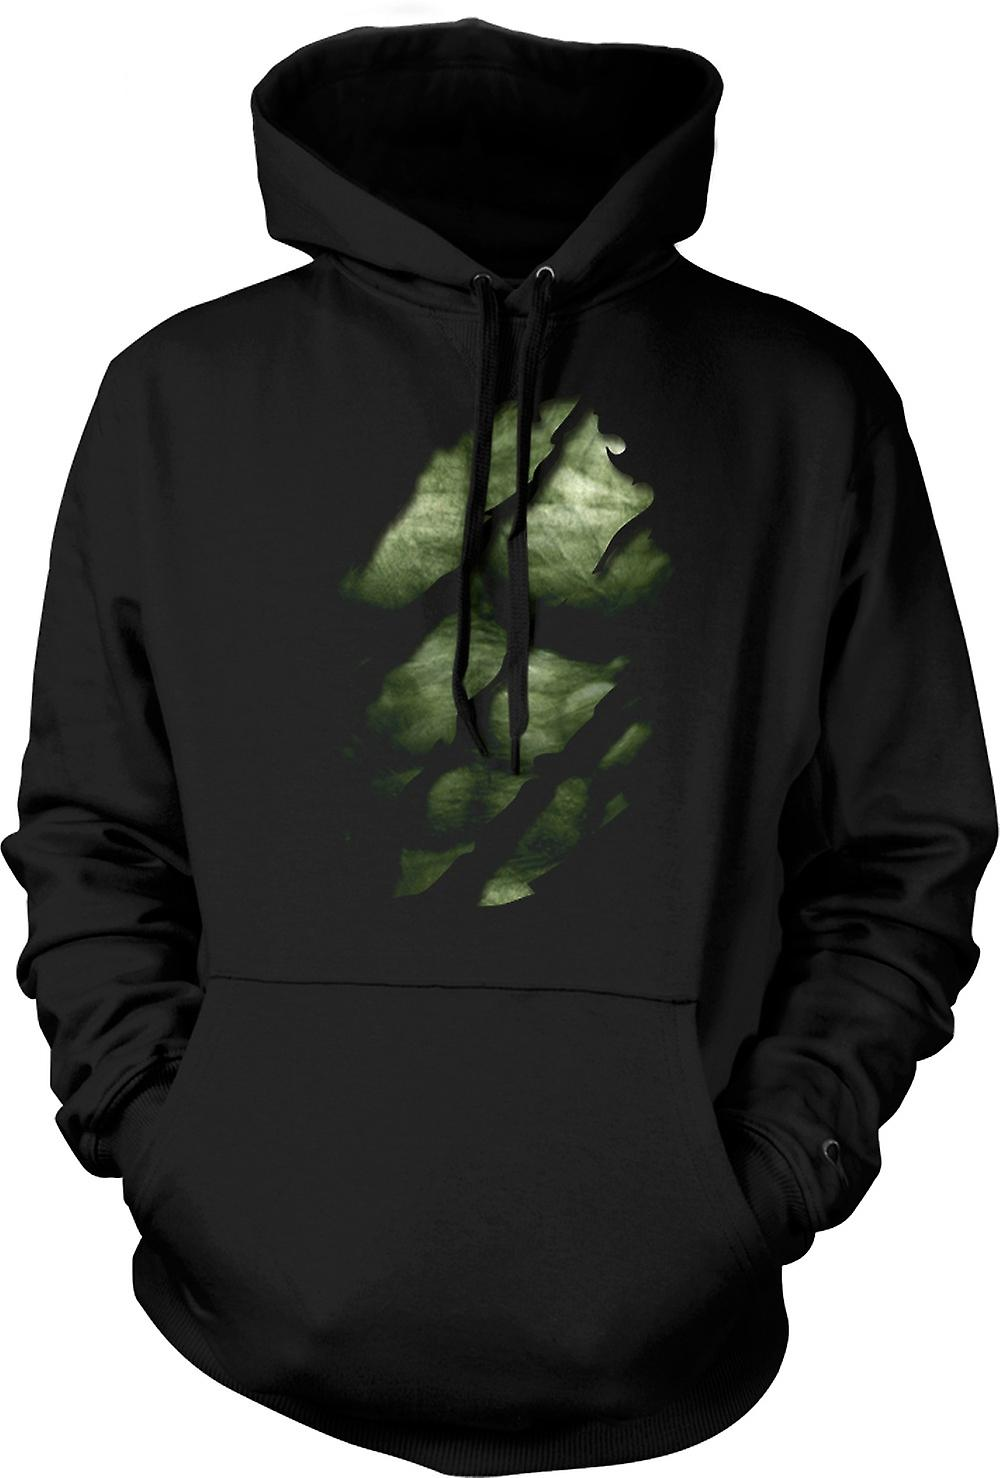 Kids Hoodie - The Hulk - Ripped Effect